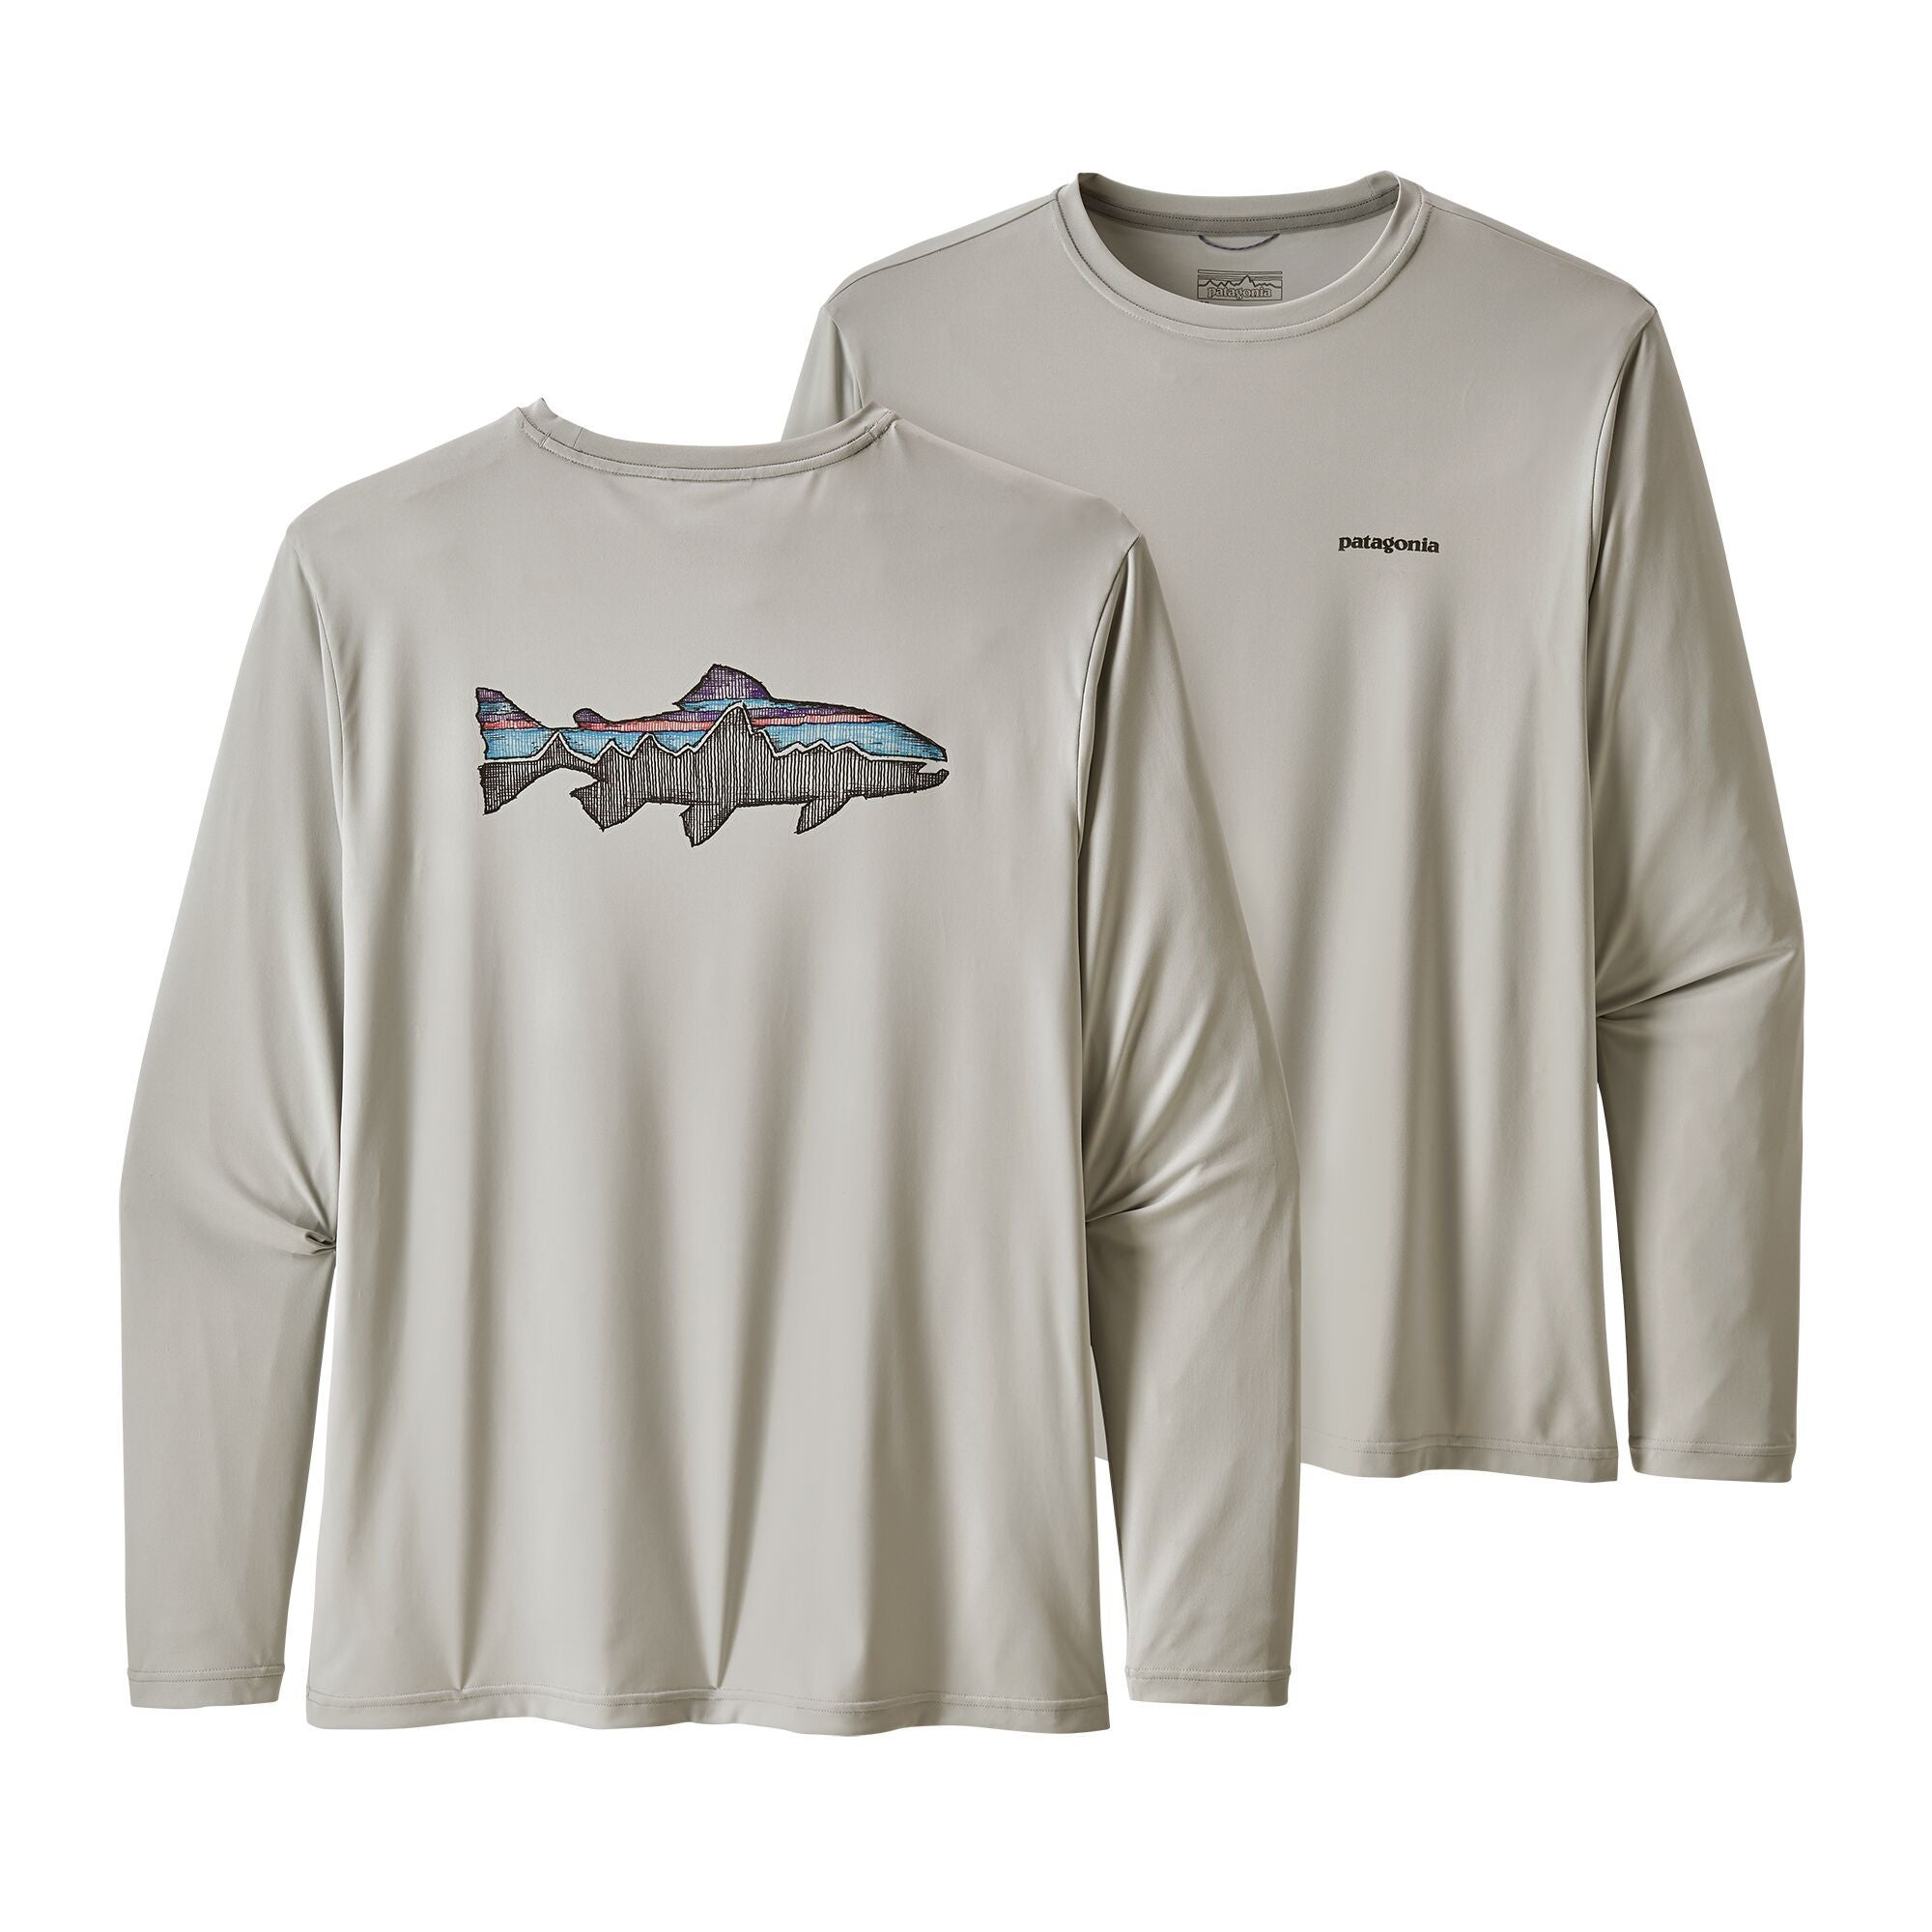 Polera Hombre Manga Larga Capilene® Cool Daily Fish Graphic Shirt